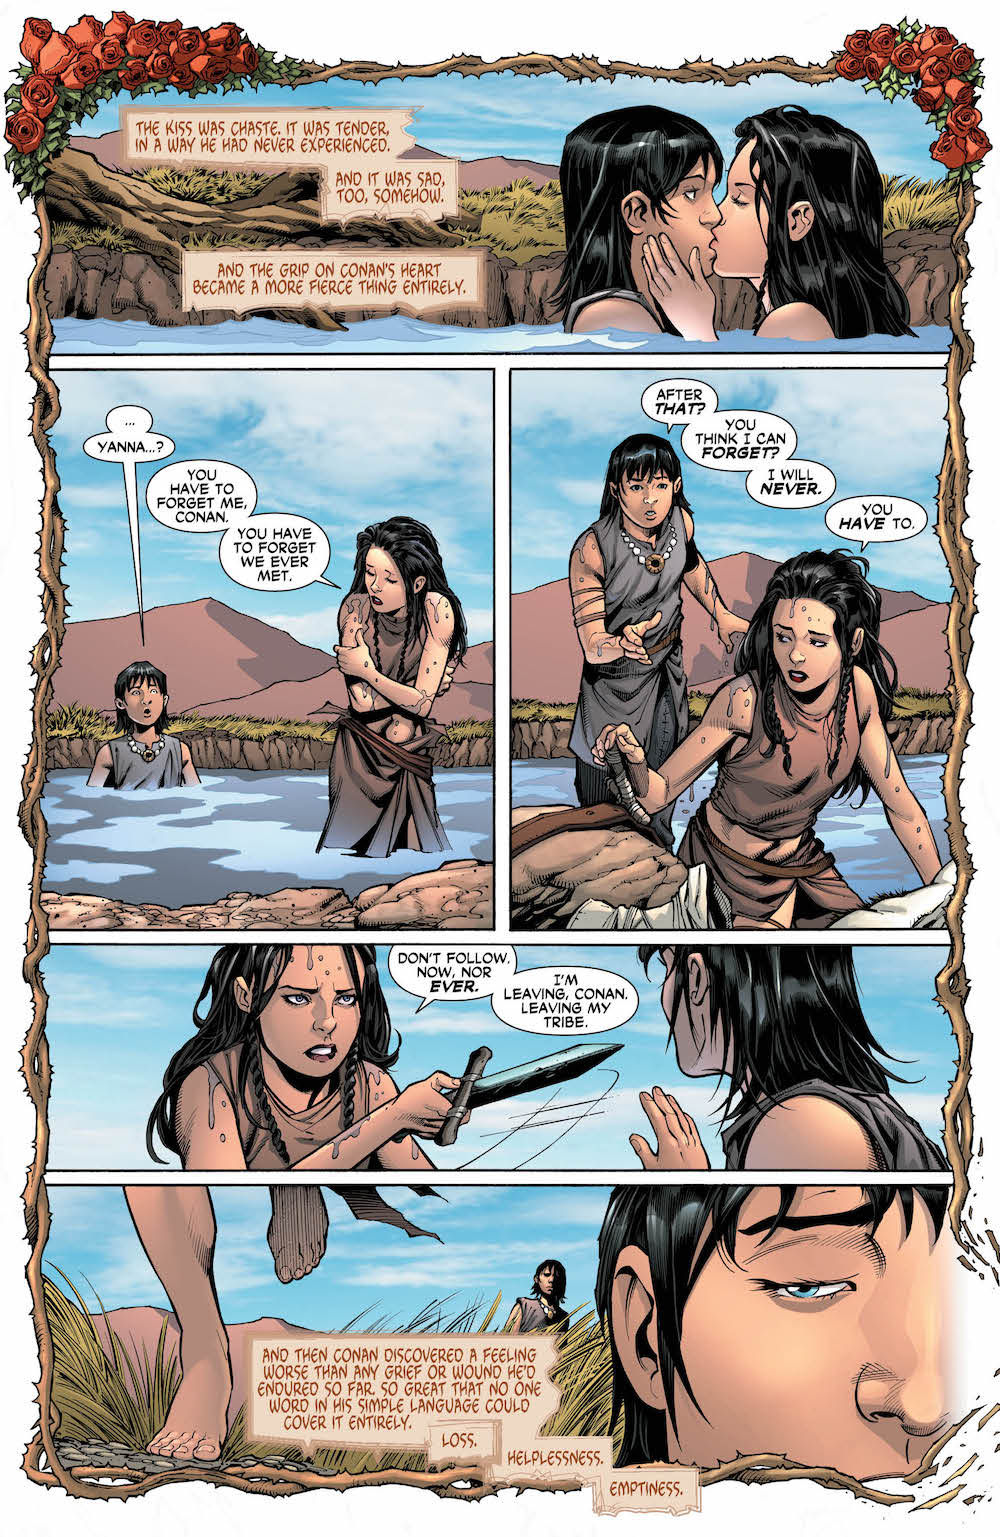 Wonder Woman/Conan #3 Diana and Conan